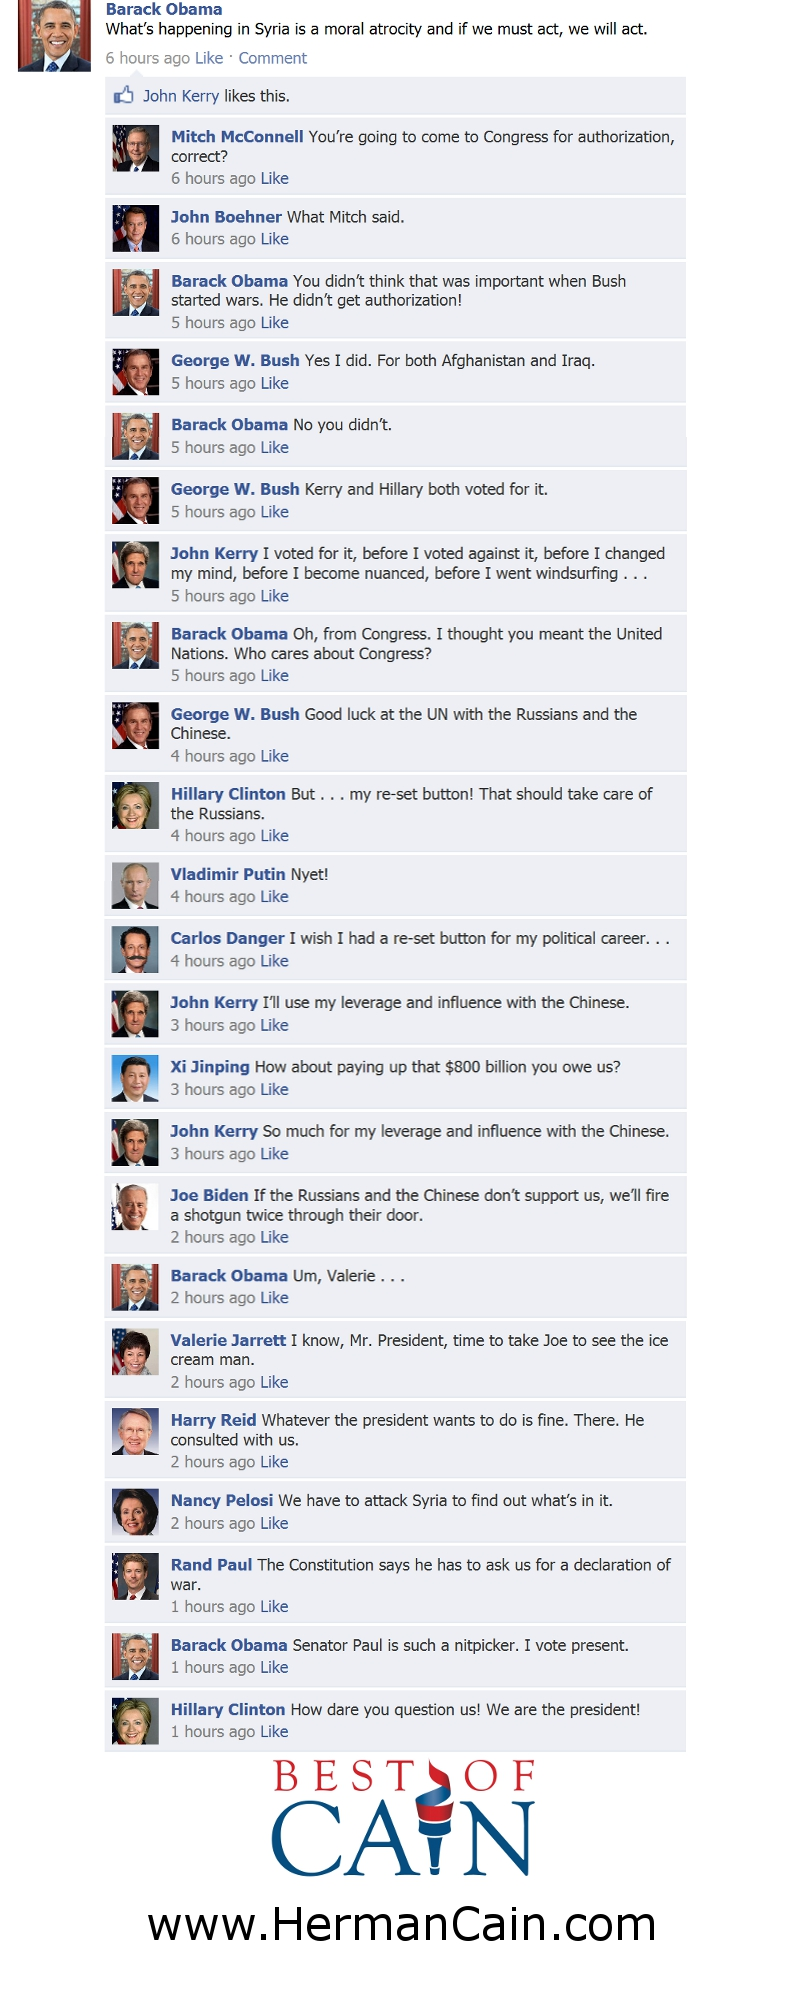 Cain - Facebook posts on Syria